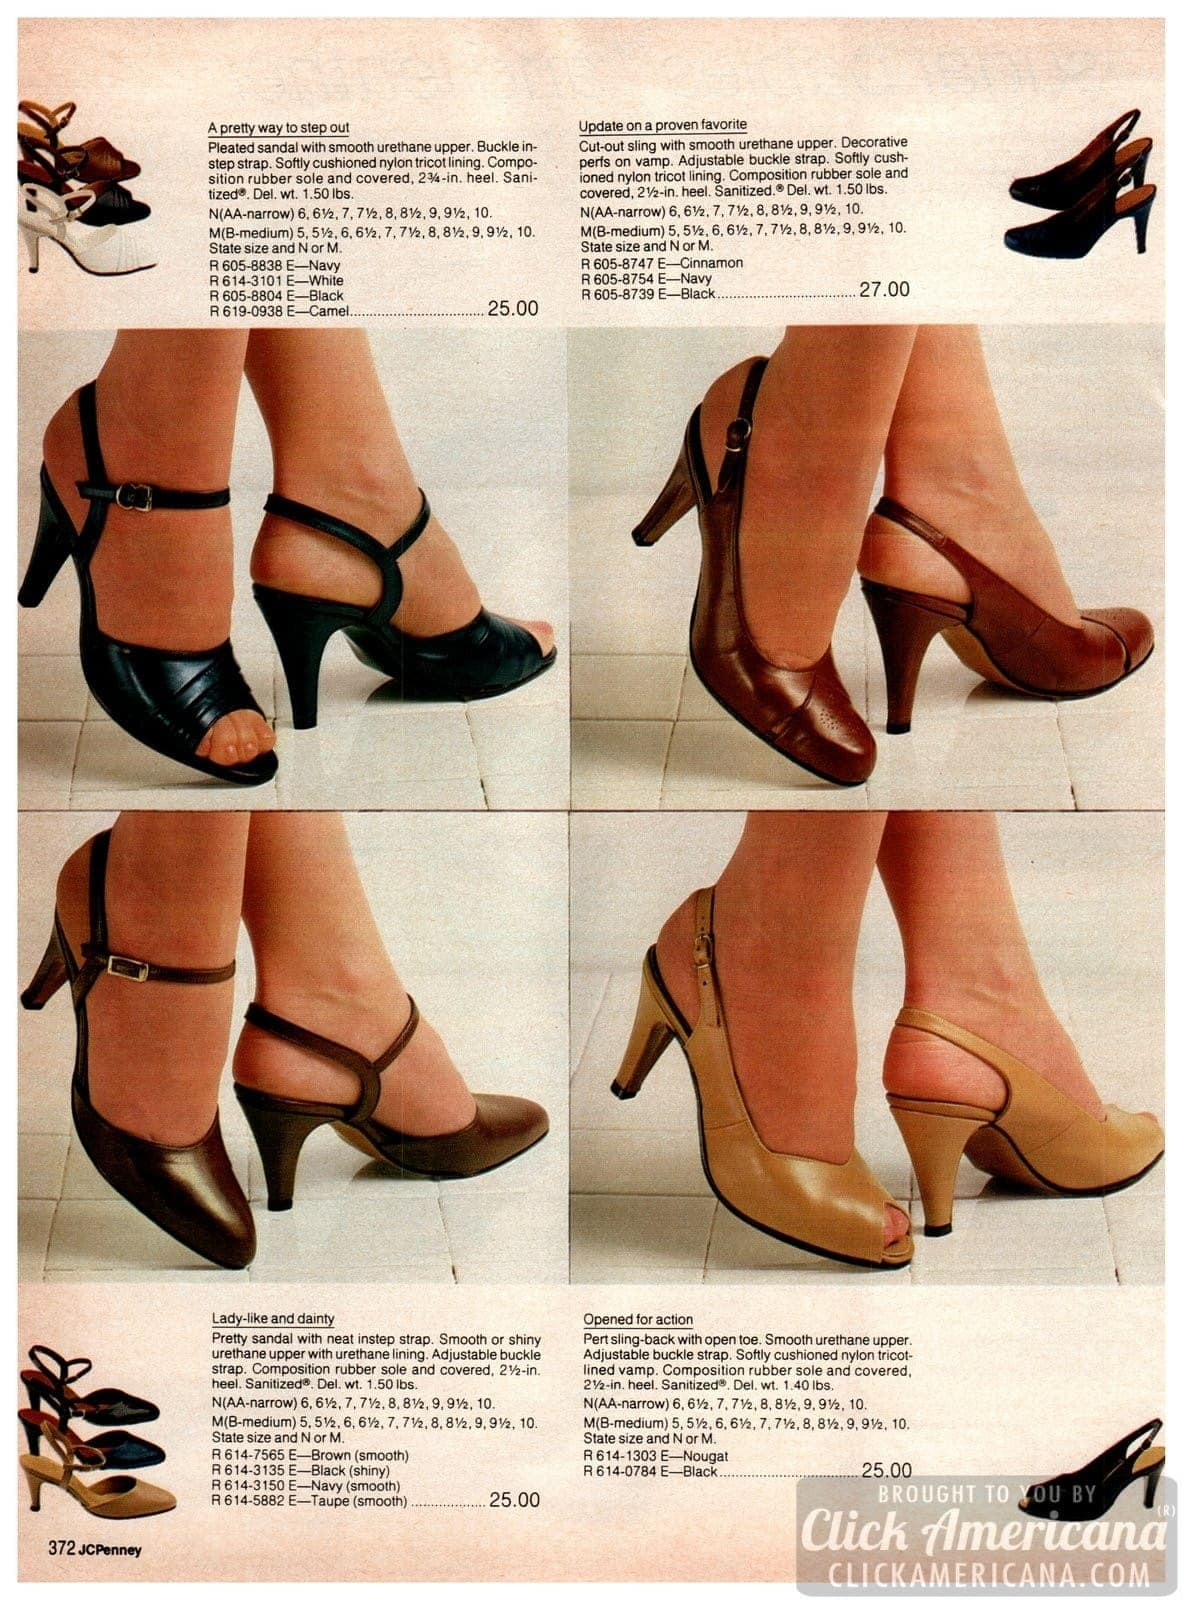 Retro '80s party shoes for ladies - strappy heels and slinkbacks in cinnamon, navy, black, white and camel